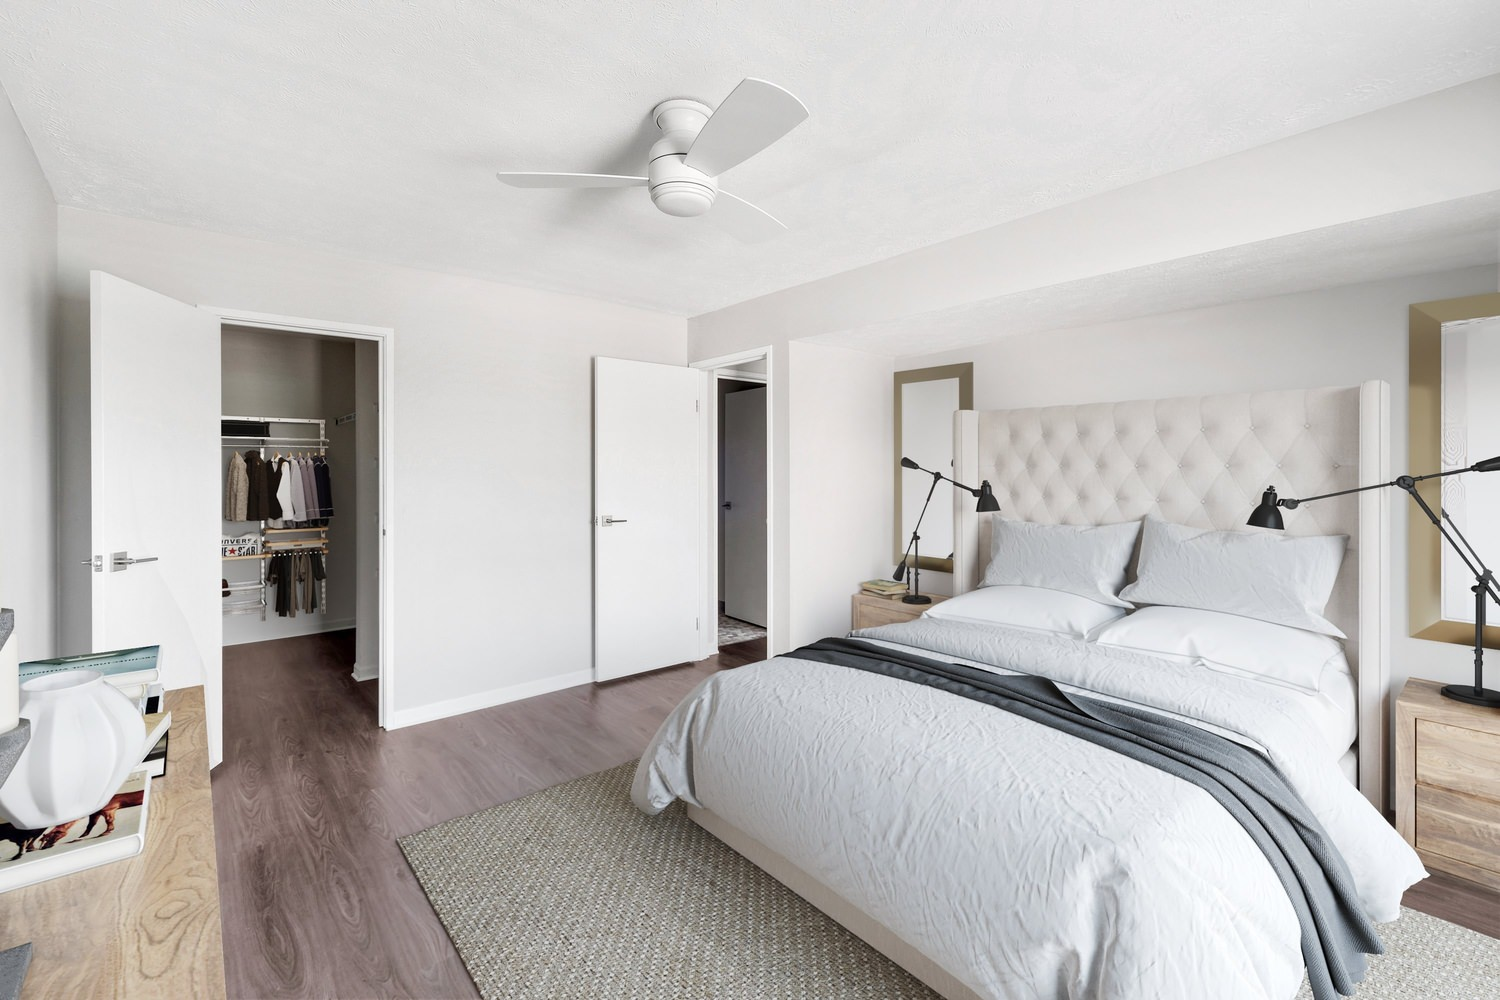 A bedroom that has a bed with white and grey sheets near other wooden furniture.